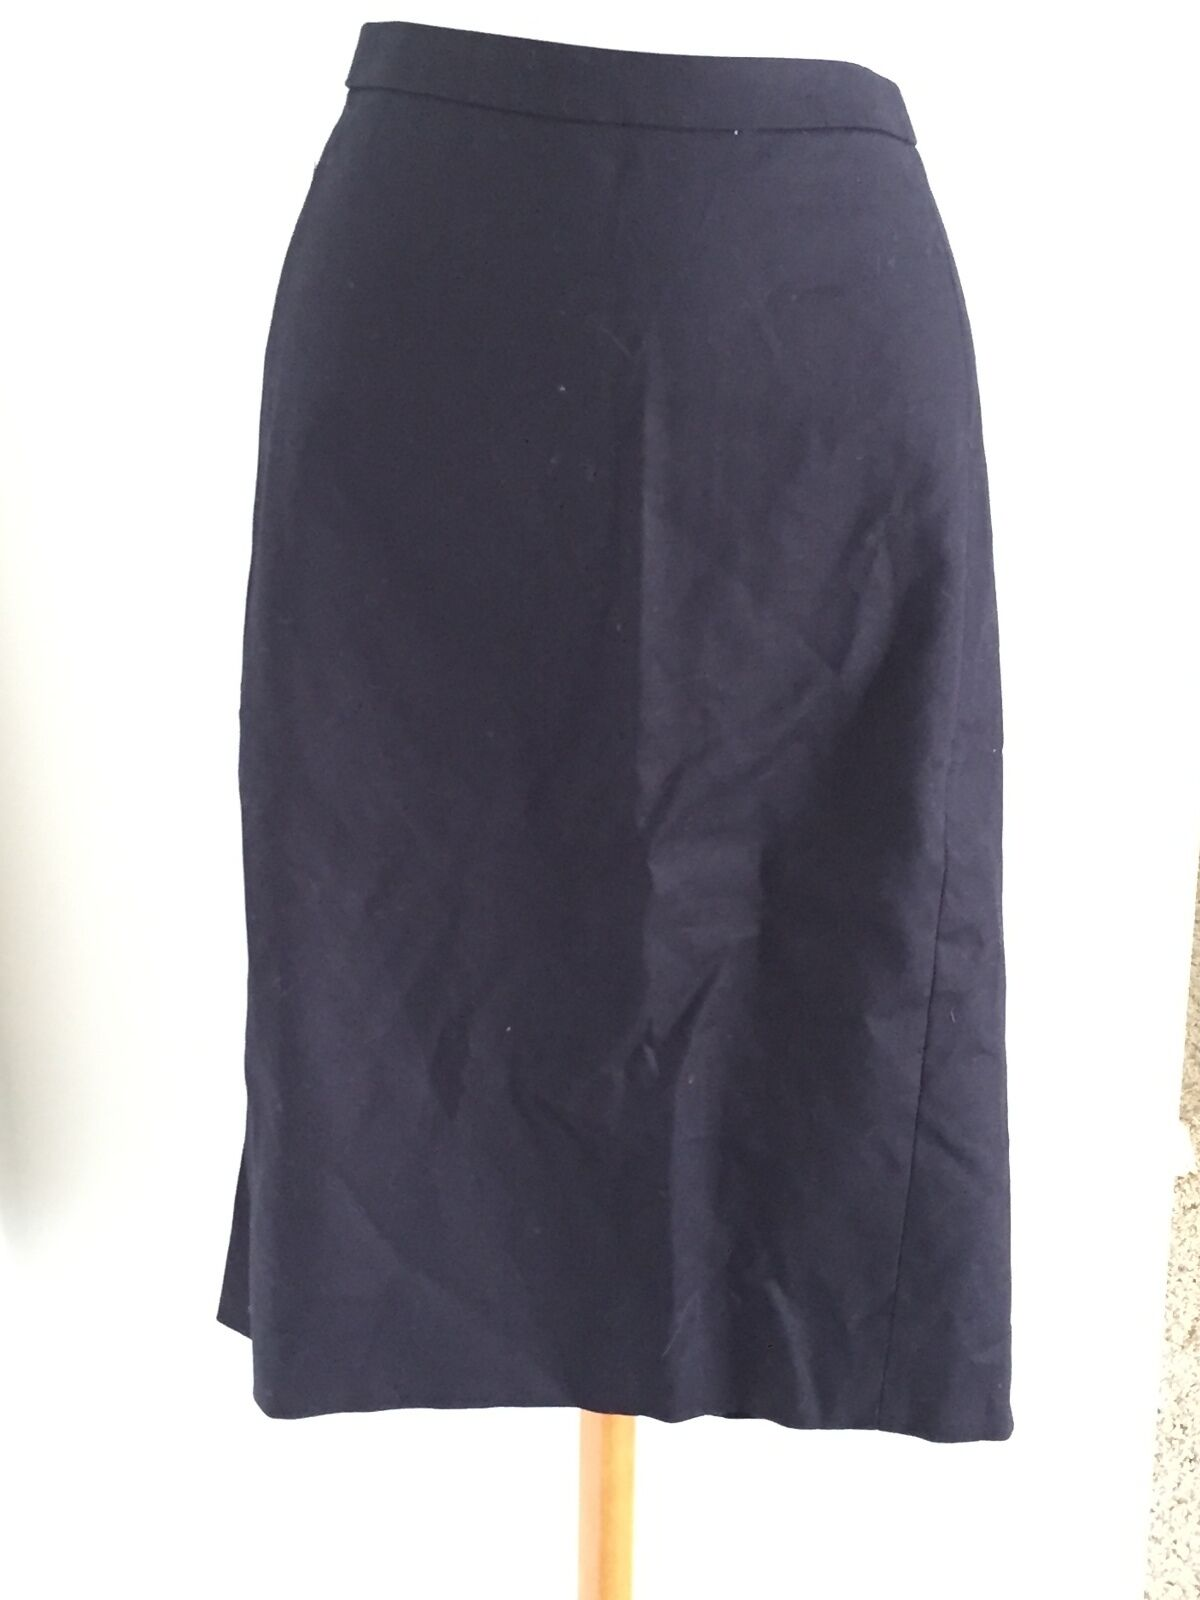 J CREW No. 2 Pencil Skirt in Cotton Twill Size 4 Navy  a2080  79.50